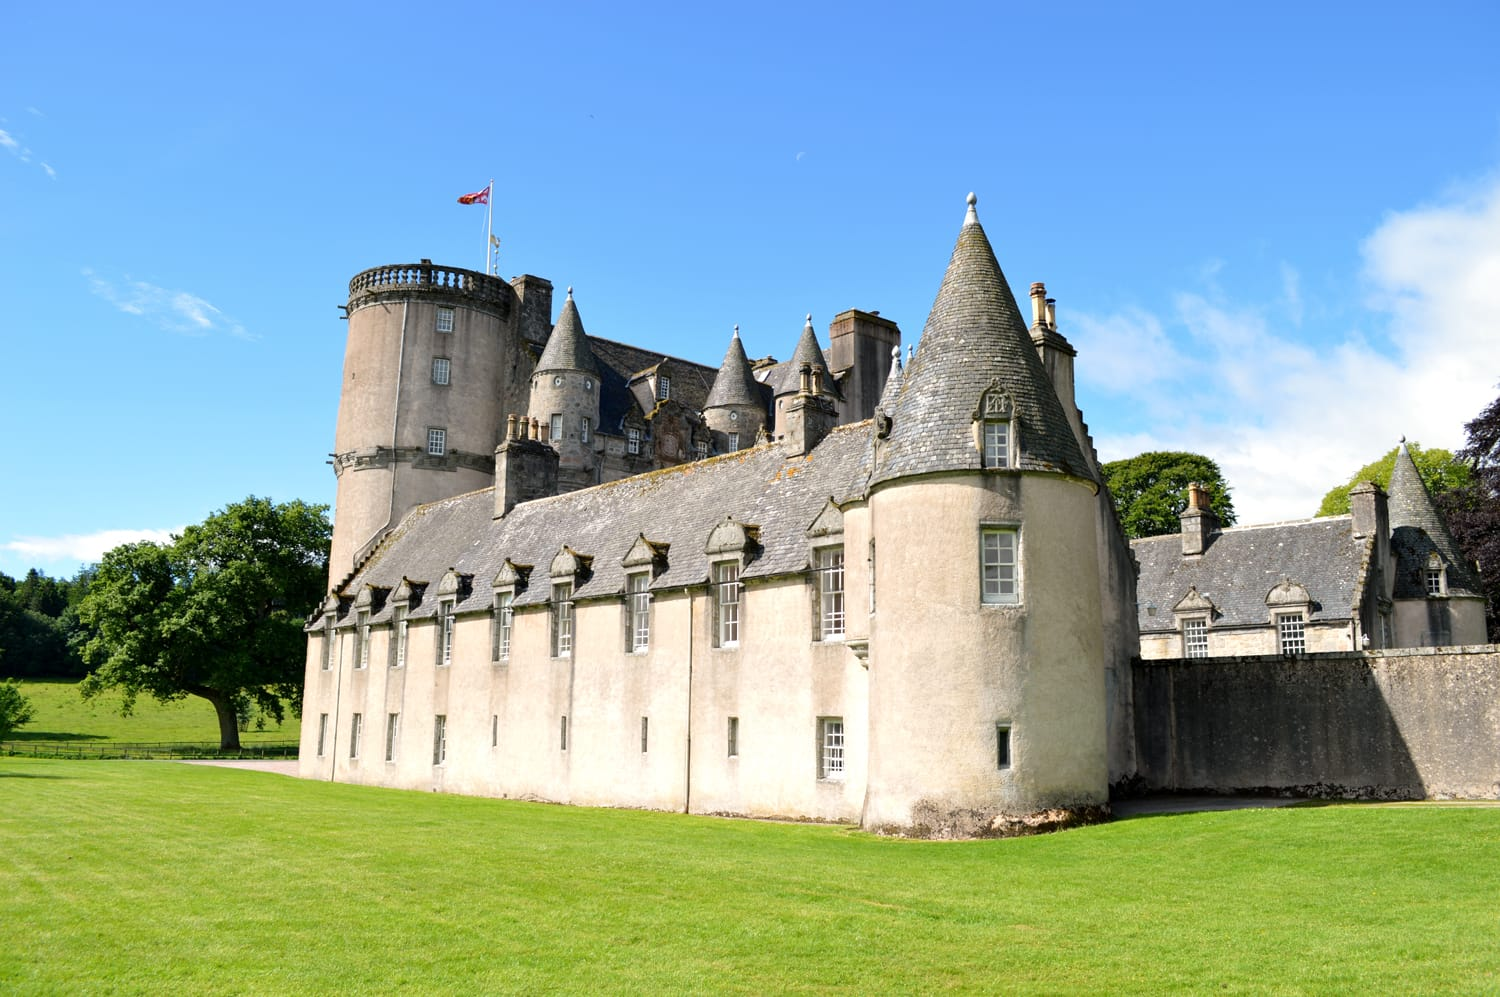 Stunning Castle Fraser situated just west of Aberdeen in Aberdeenshire Scotland